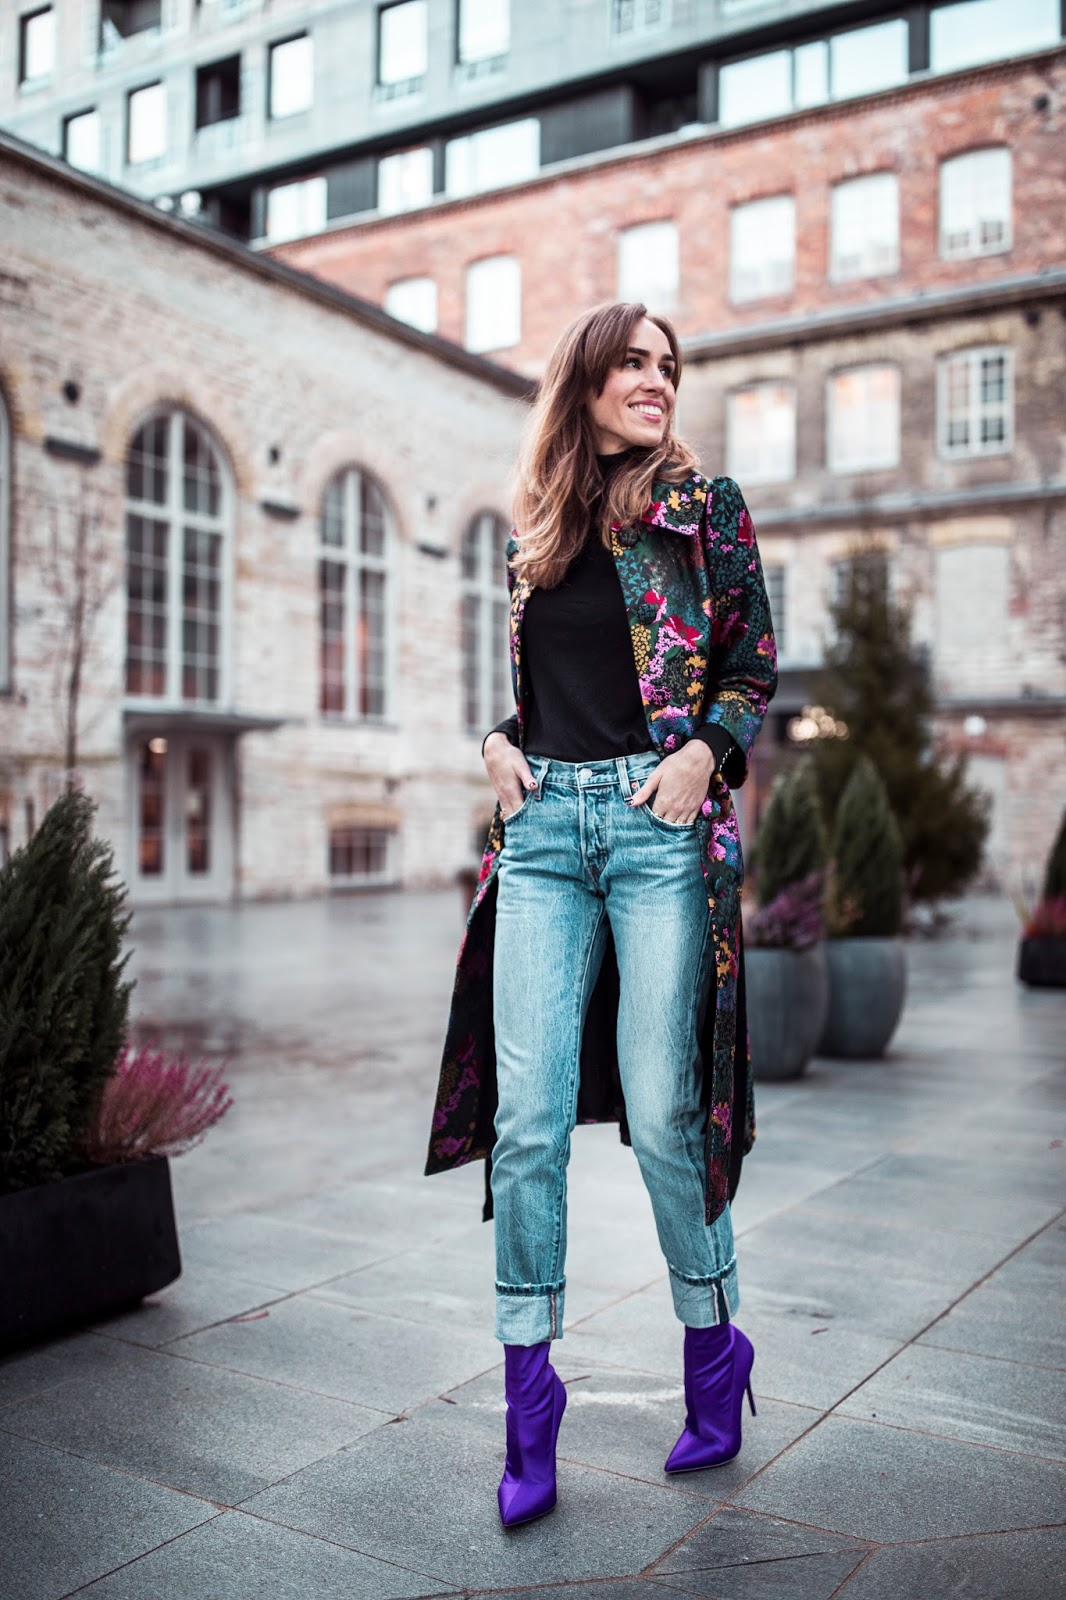 floral coat outfit street style